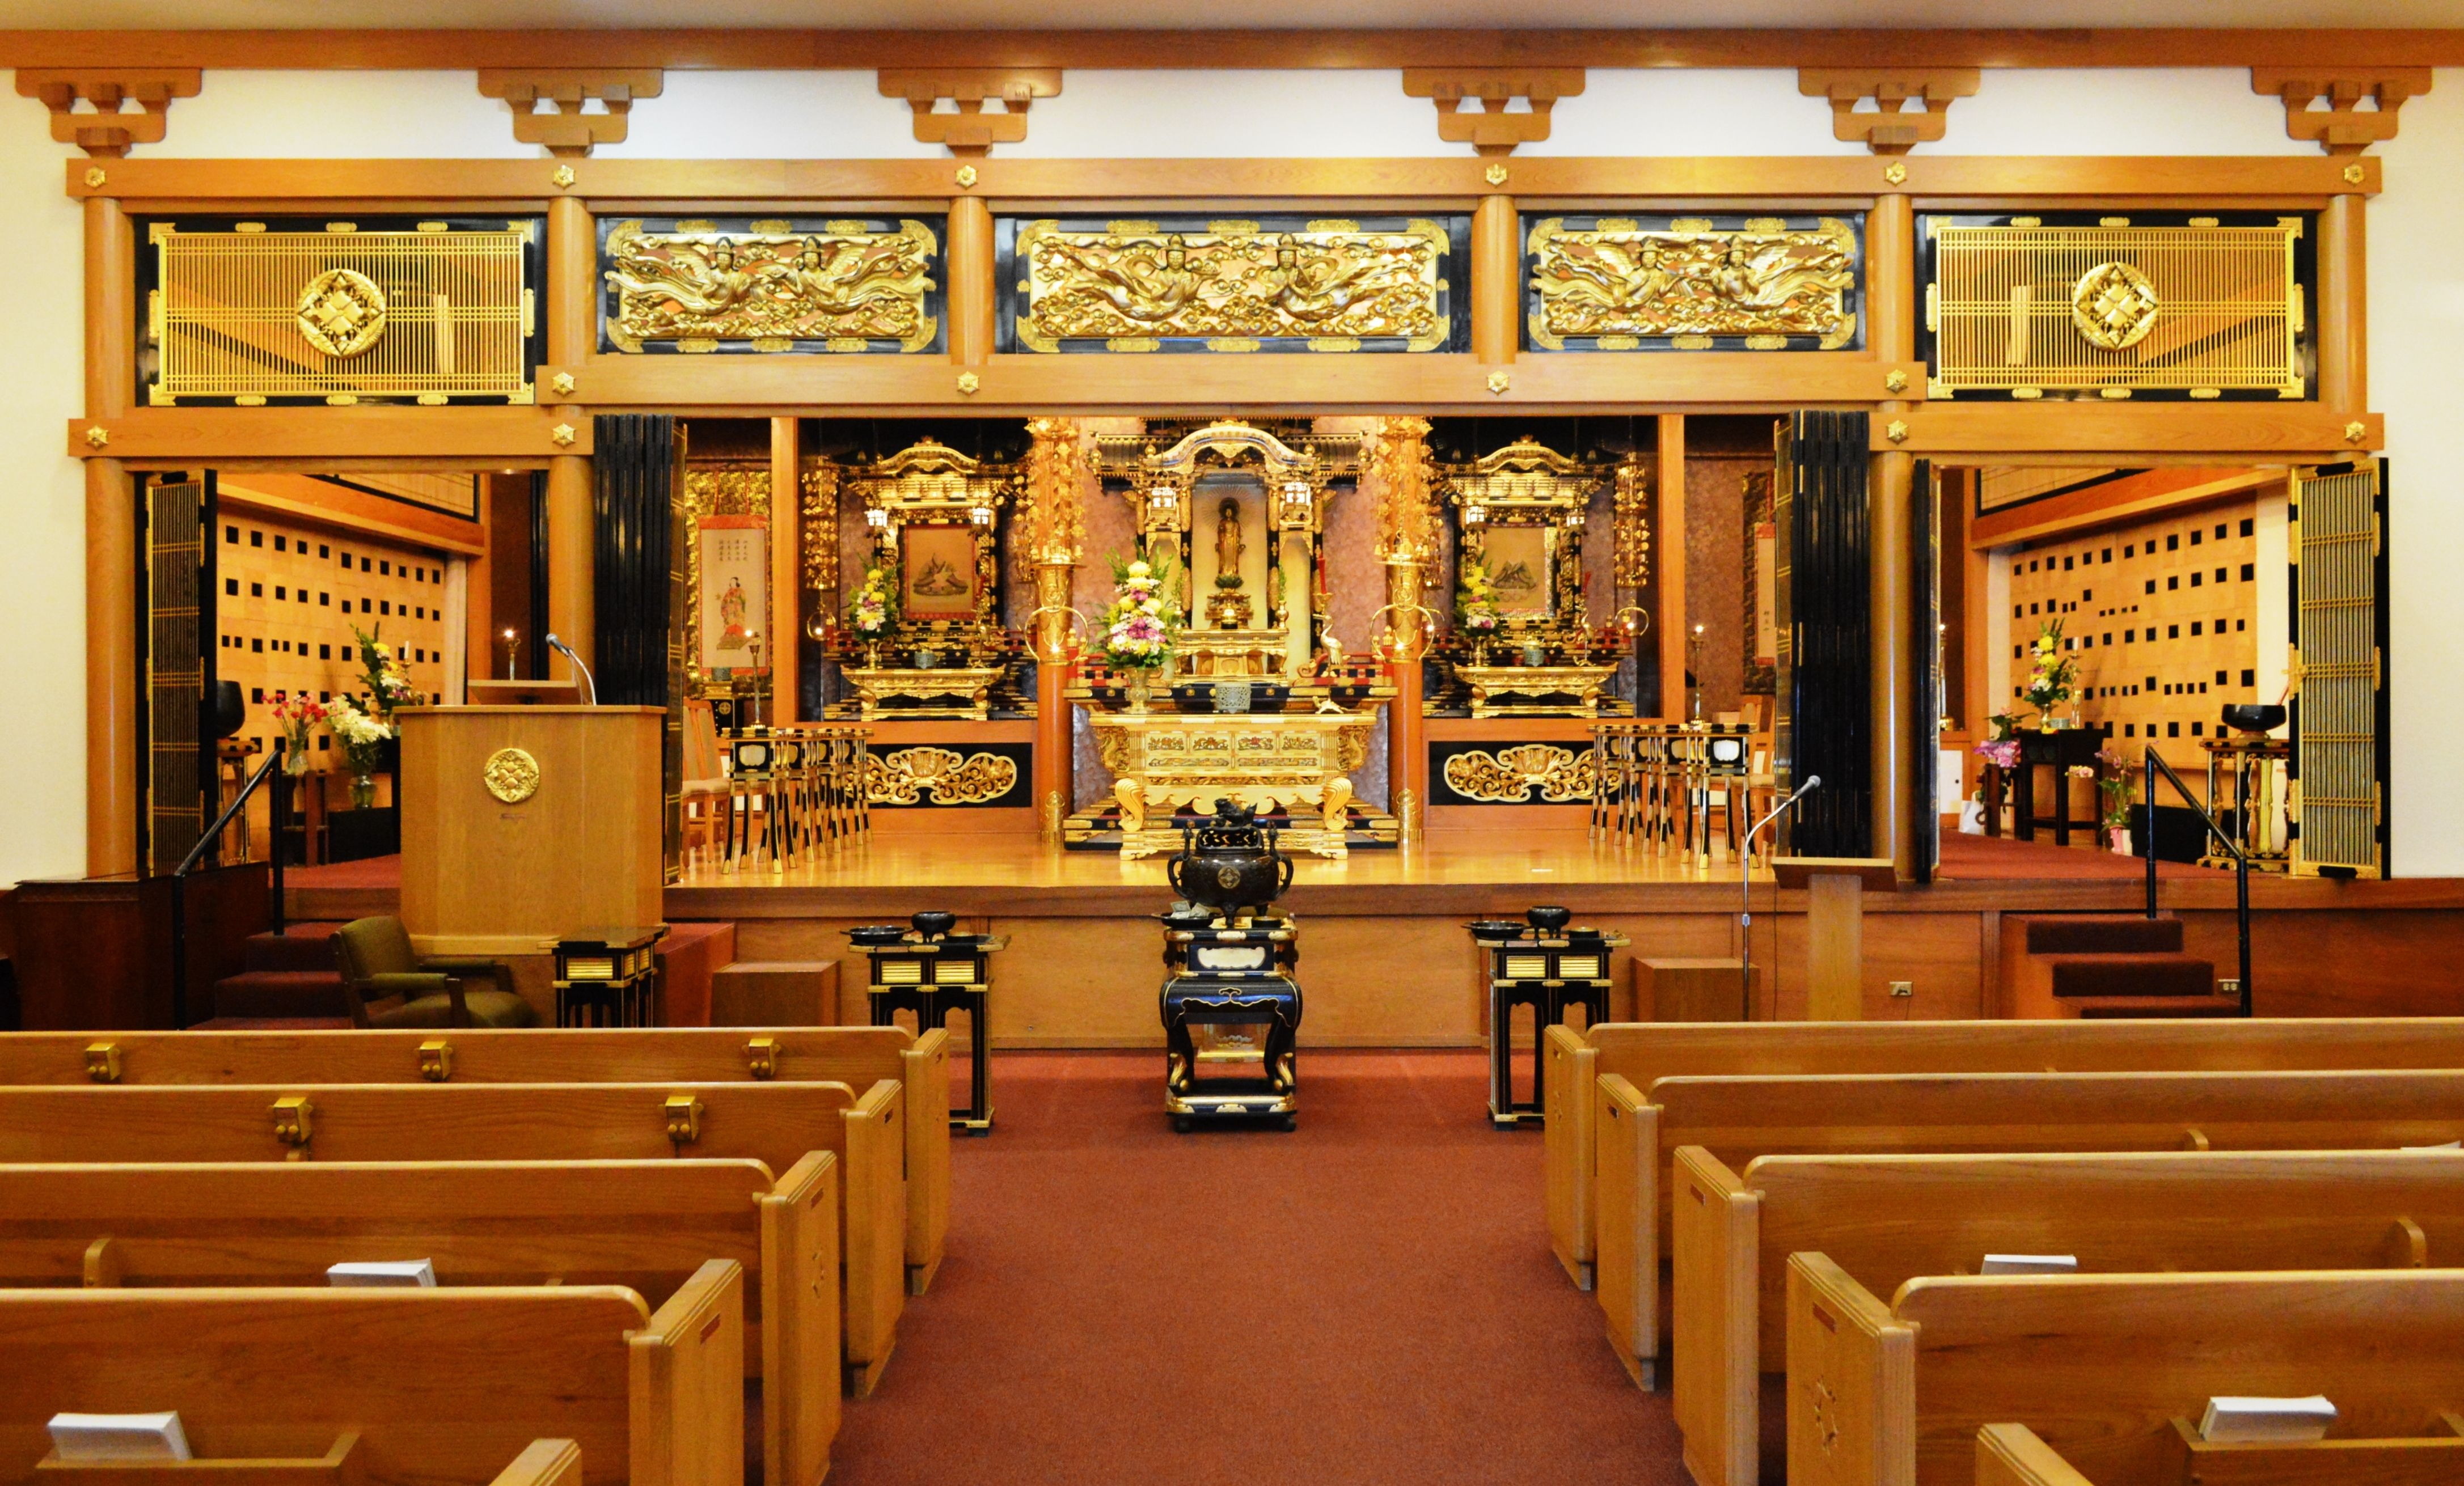 Kyoto Buddhist Temple Interior 的图片搜索结果 Buddhist Temples